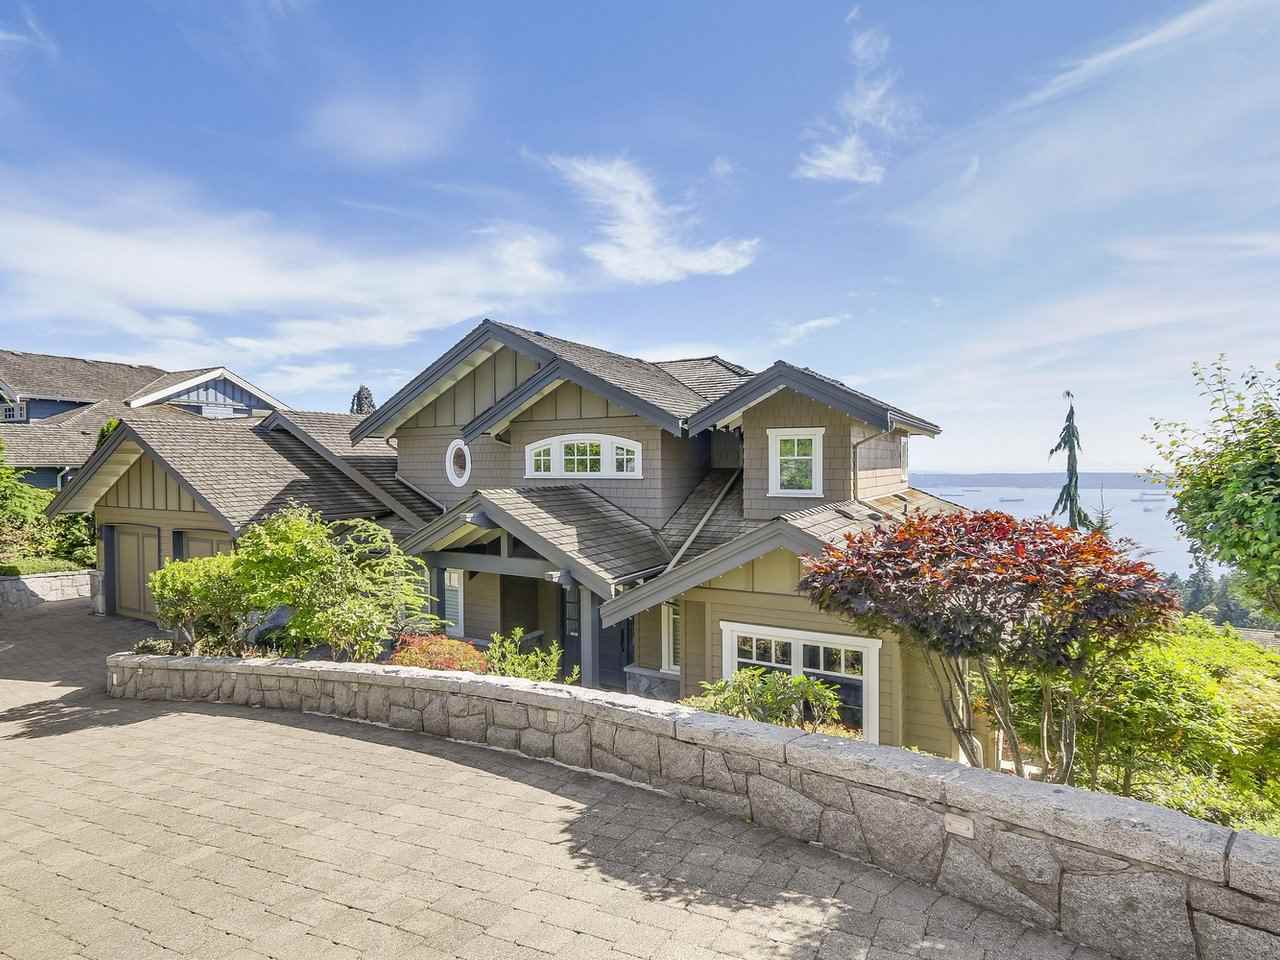 2428 CHIPPENDALE ROAD, West Vancouver, BC V7S 3J2